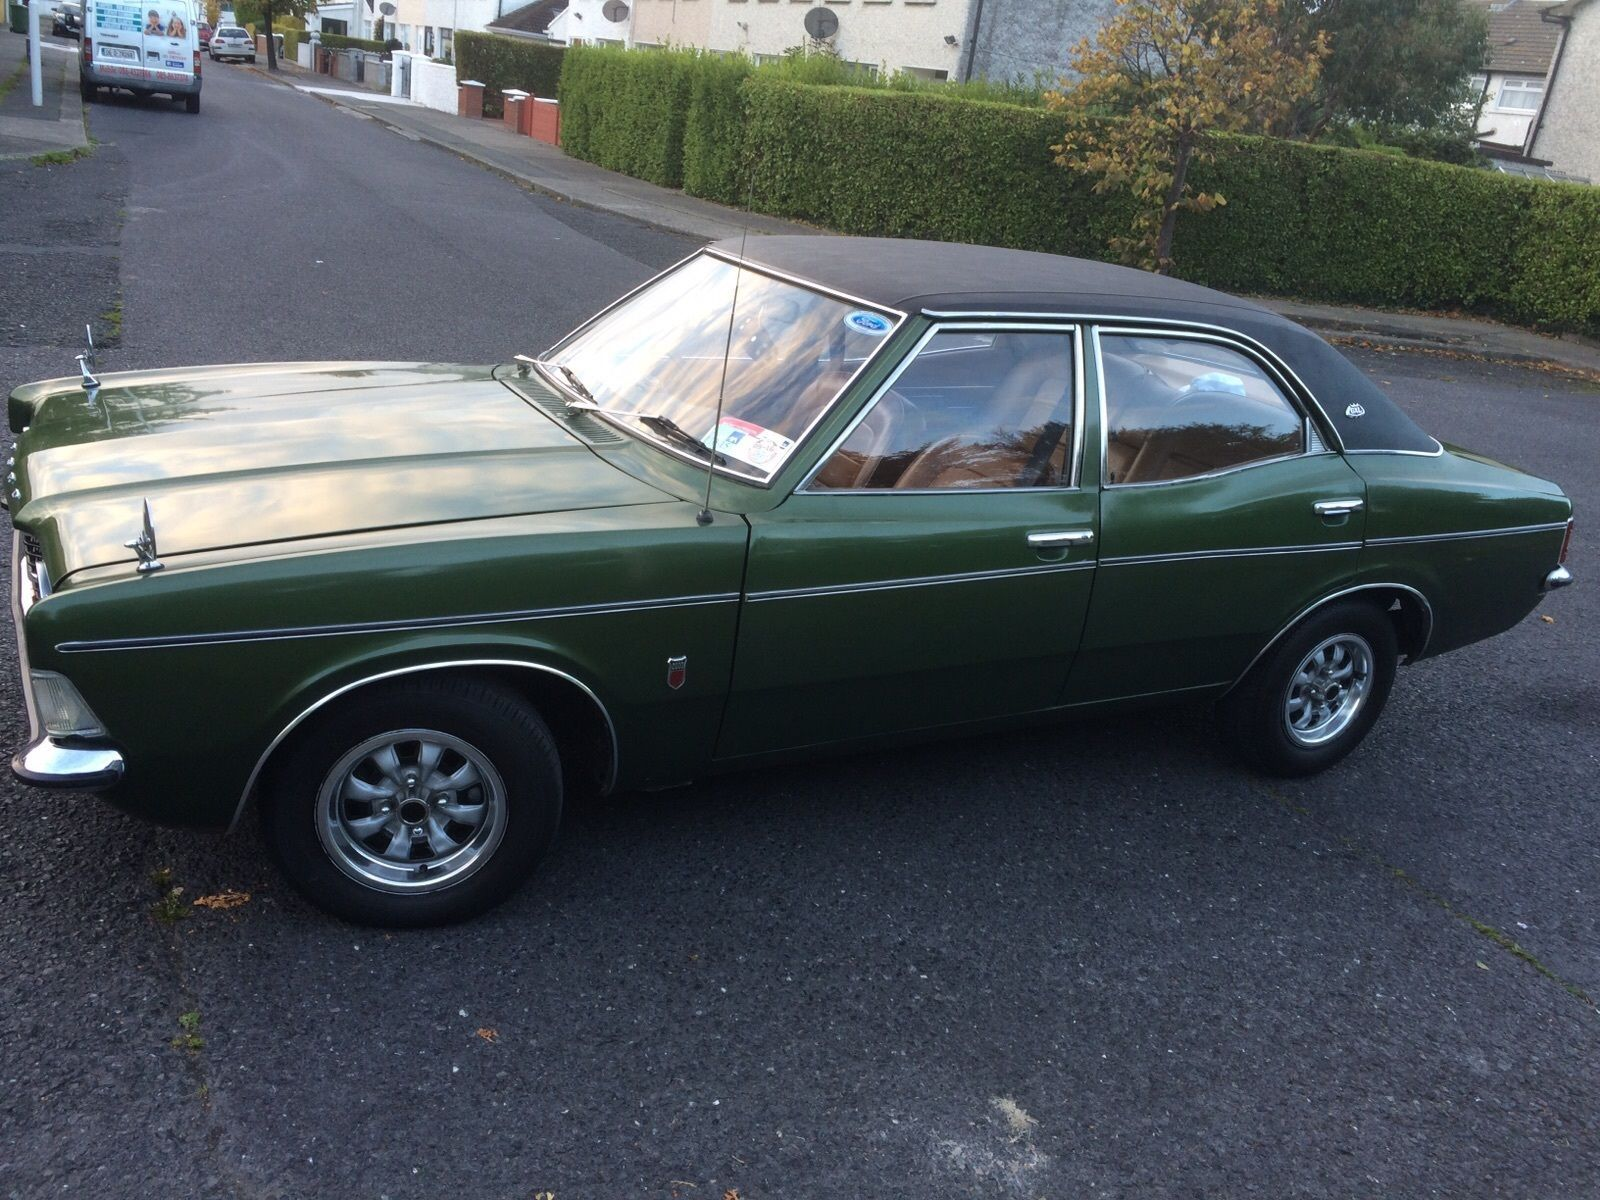 Ford Cortina 2 0 Gxl 1973 Mk3 Classic Cars Ford Cars For Sale